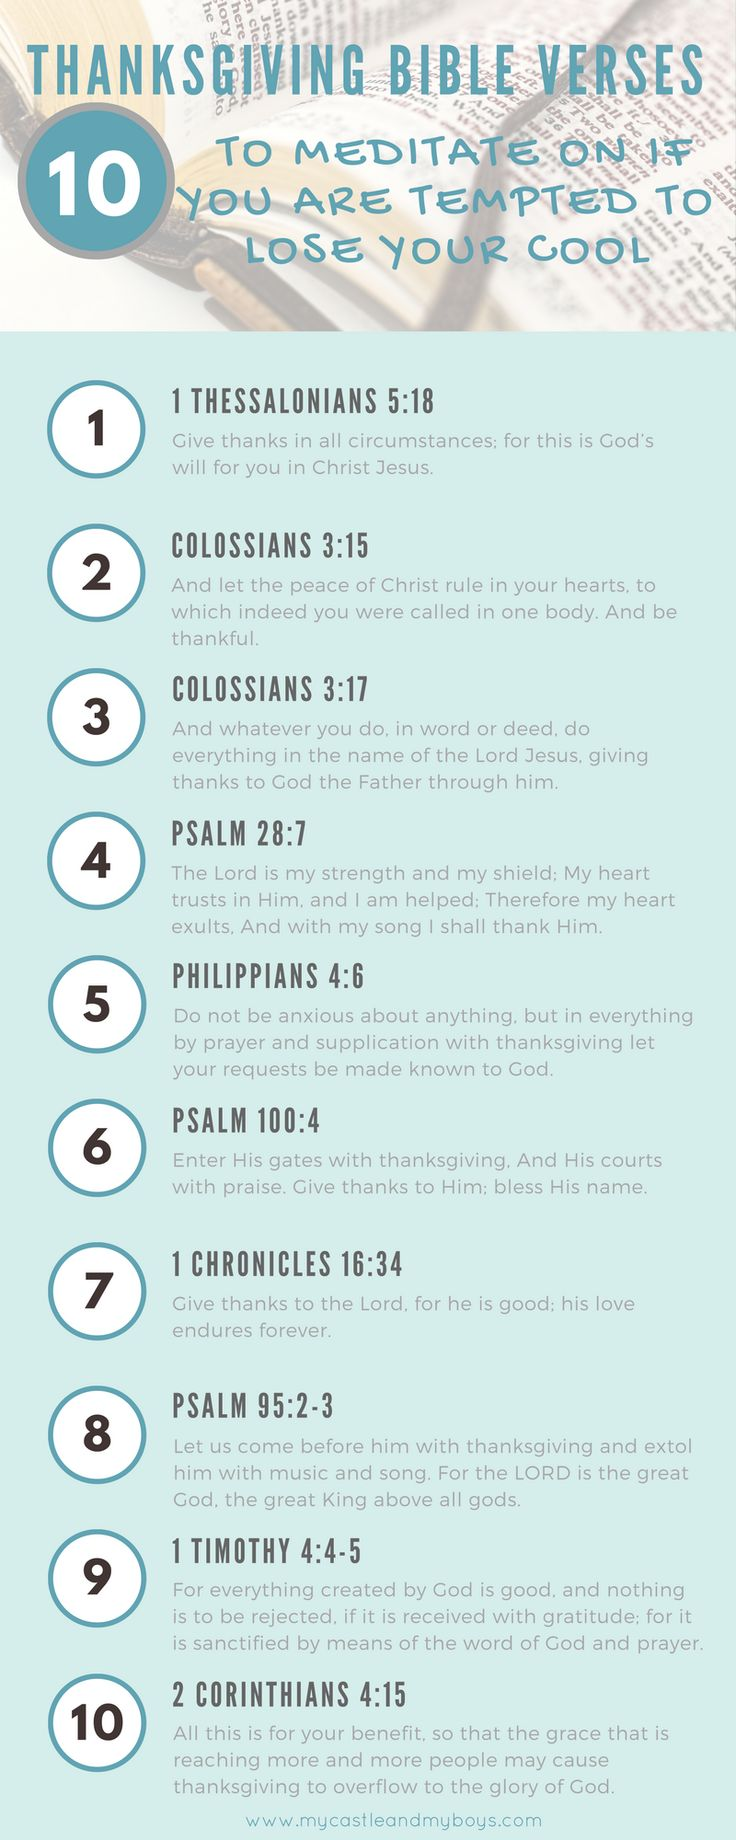 Going through motherhood is like going through chaos.  The noise, the tension, the emotional ups and downs... How can we be thankful in the midst of the chaos we go through in our daily lives?  Meditate on these 10 Bible verses that will help you remain thankful even in the midst of chaos.